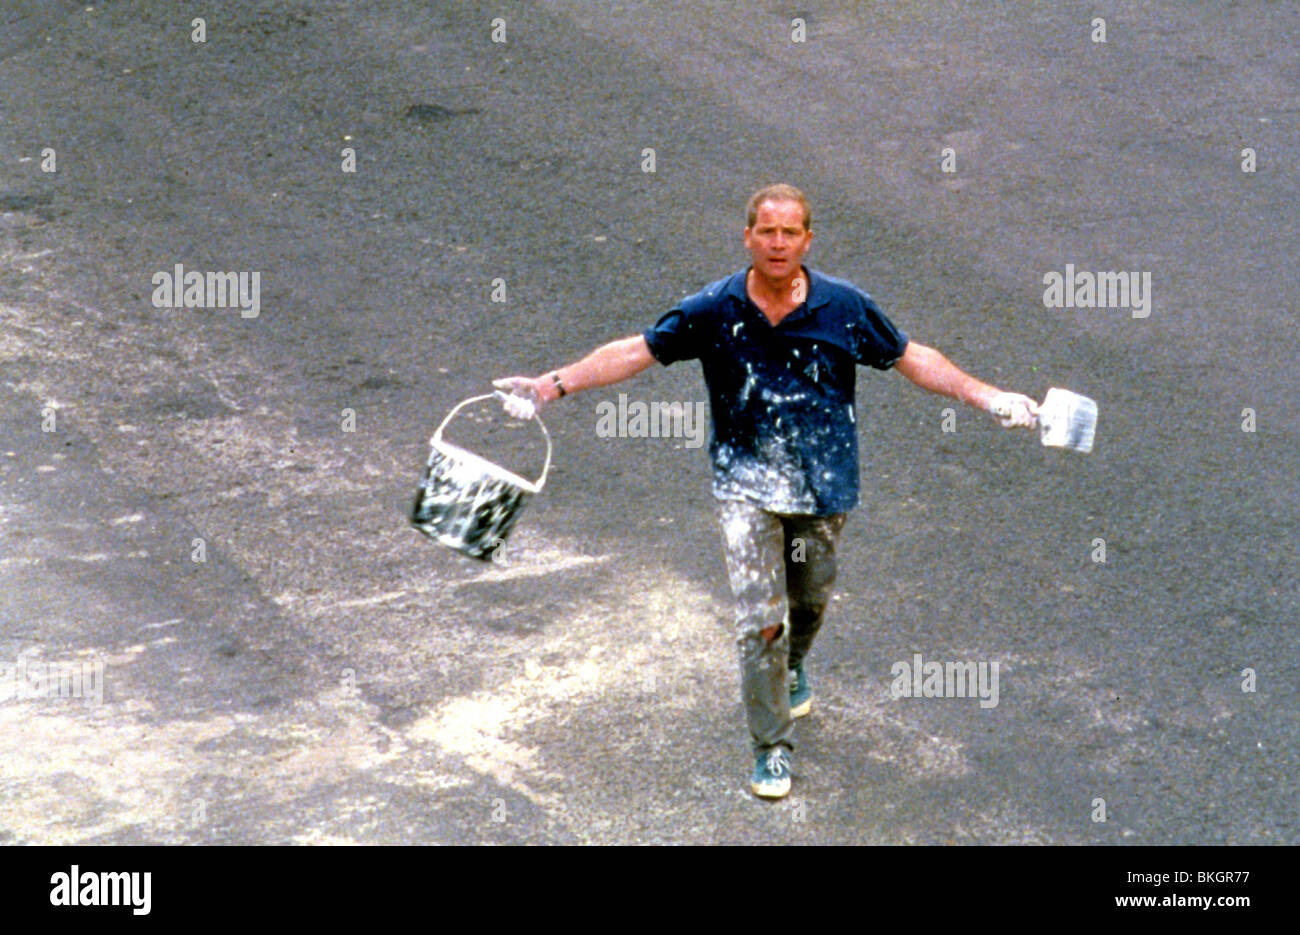 MY NAME IS JOE (1998) PETER MULLAN MNIJ 072 - Stock Image